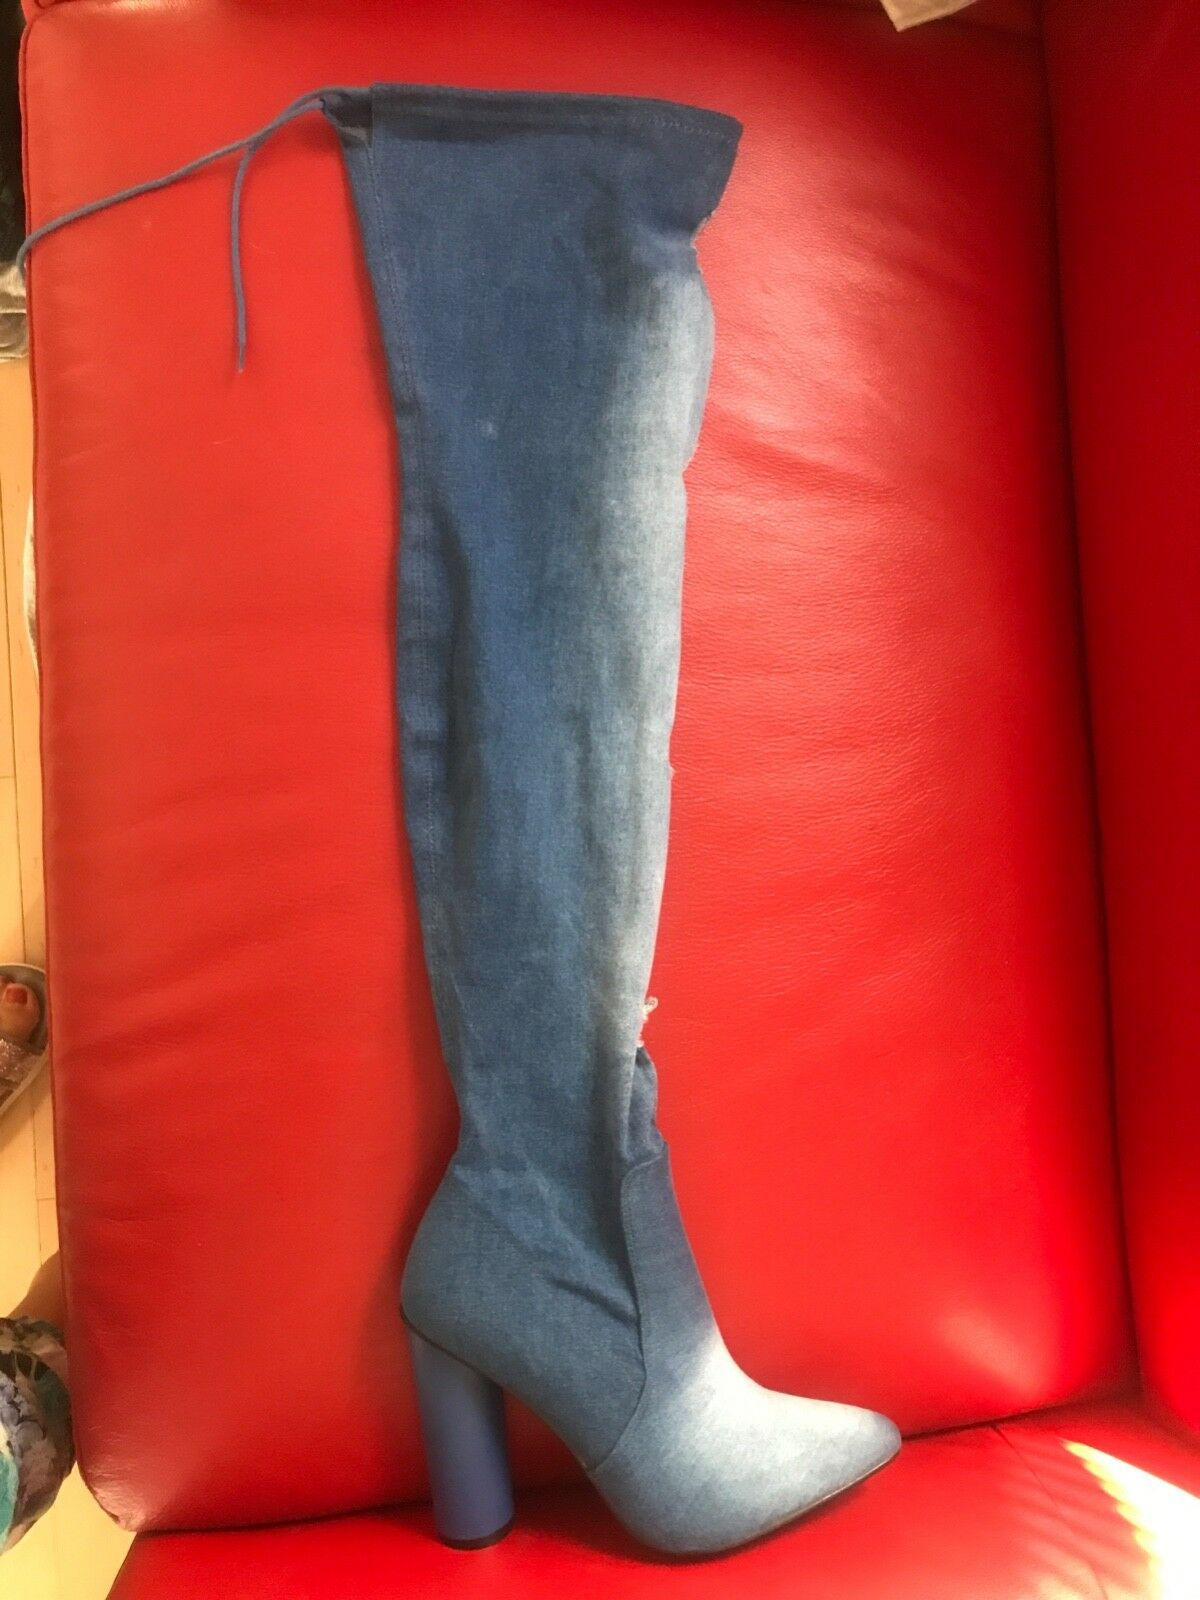 Stunning over the knee stretchy denim boots 8 bluee New